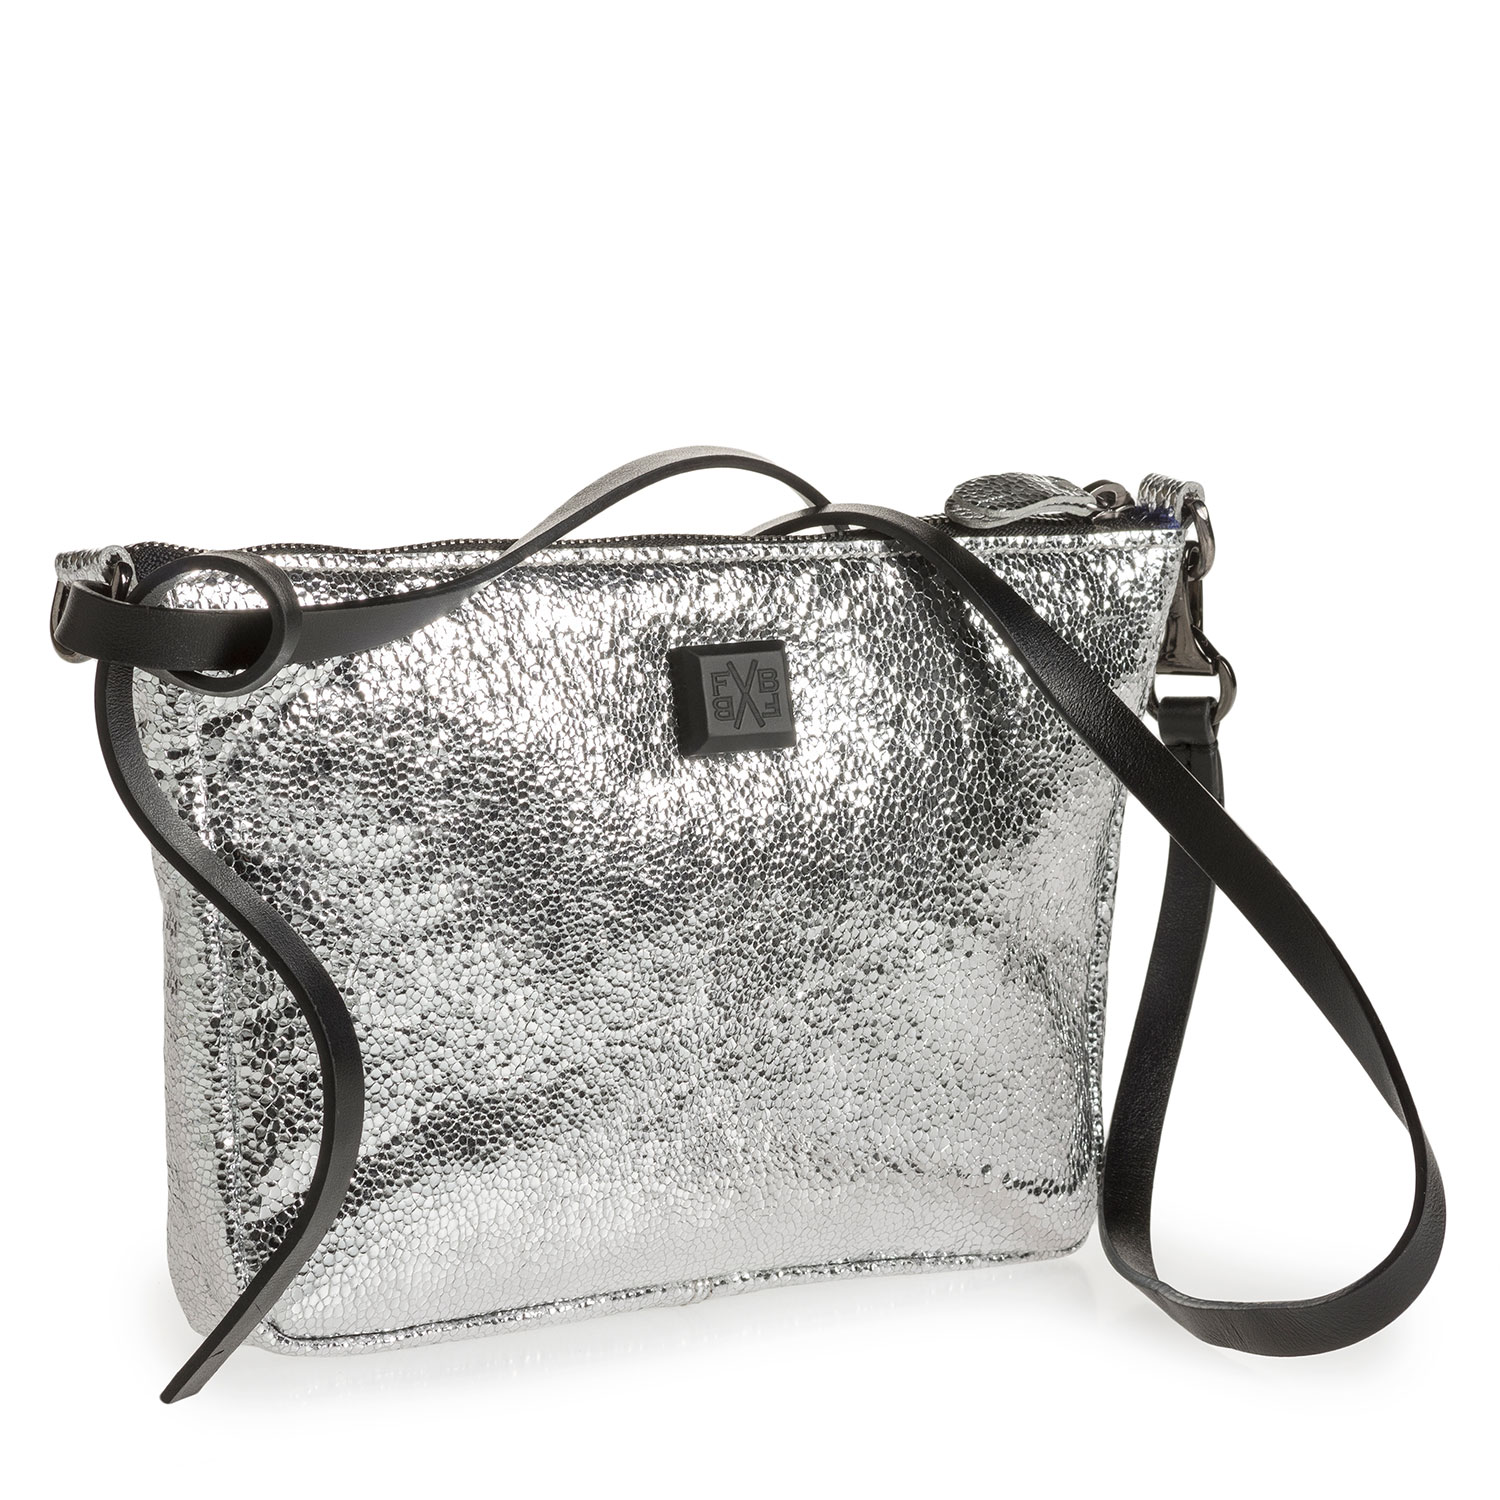 89019/14 - Silver leather bag with metallic print